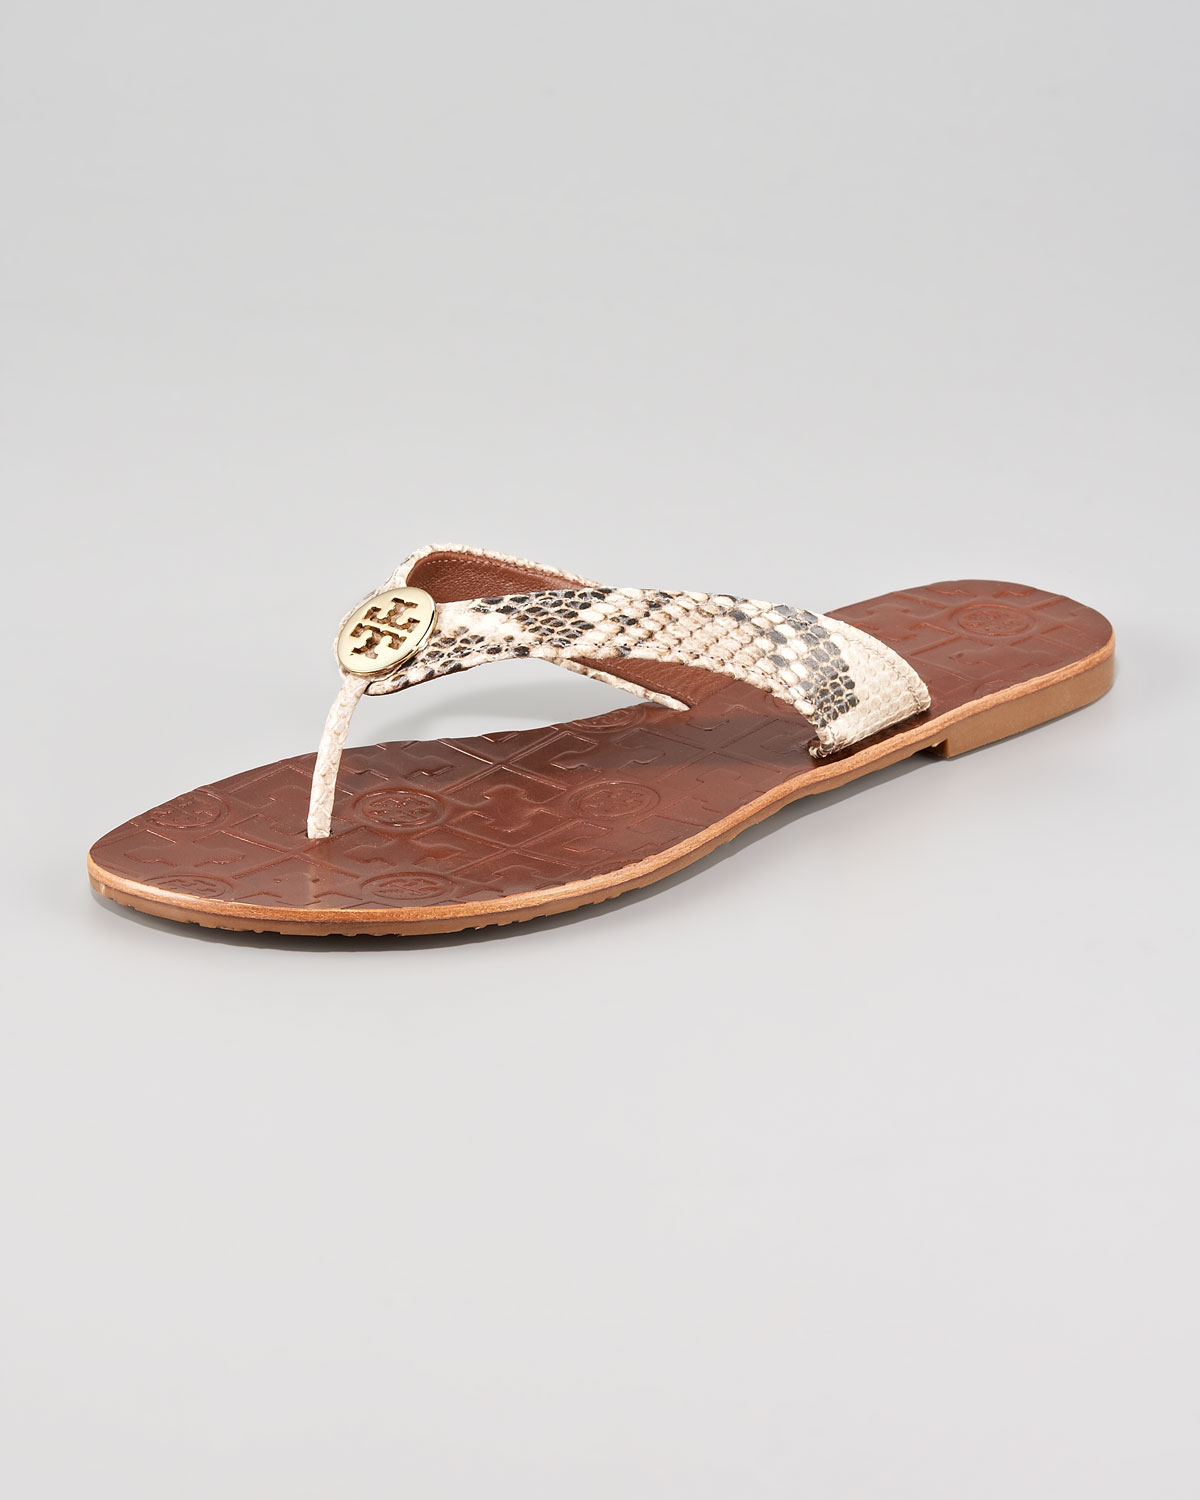 ee6667b4d75 Lyst - Tory Burch Thora Snake print Thong Sandal in Metallic